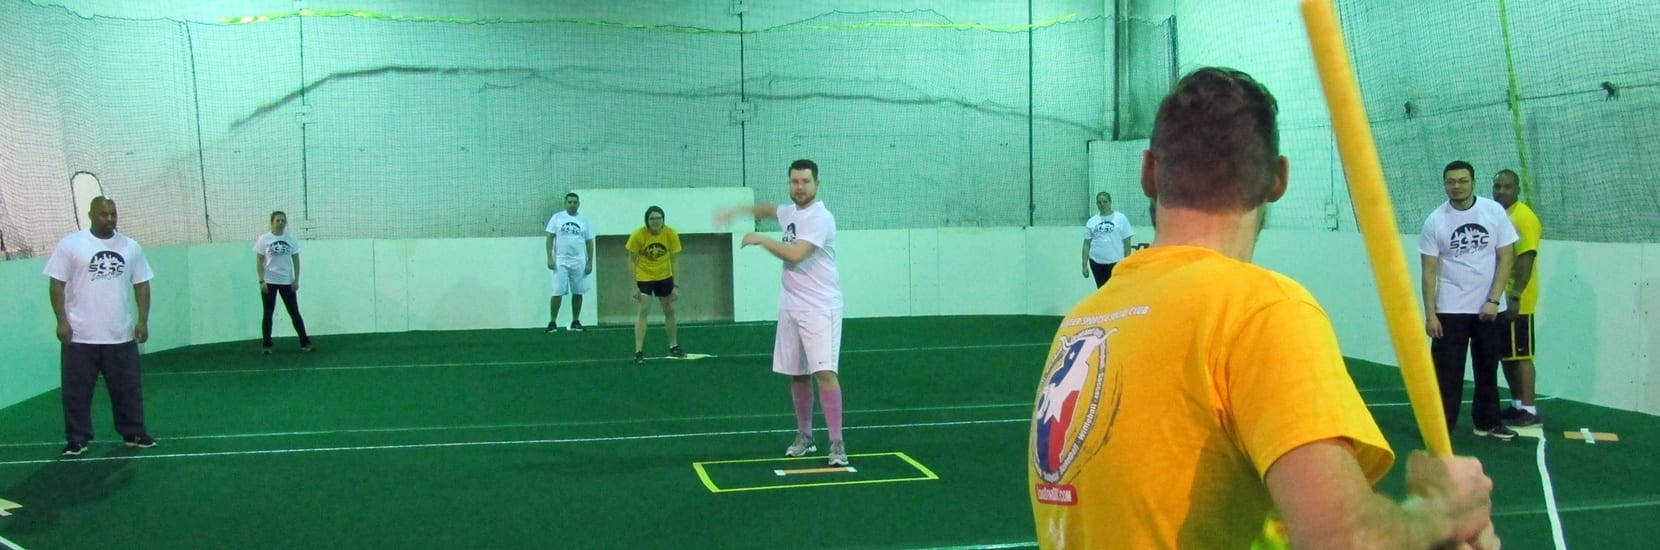 adult wiffleball league Dallas